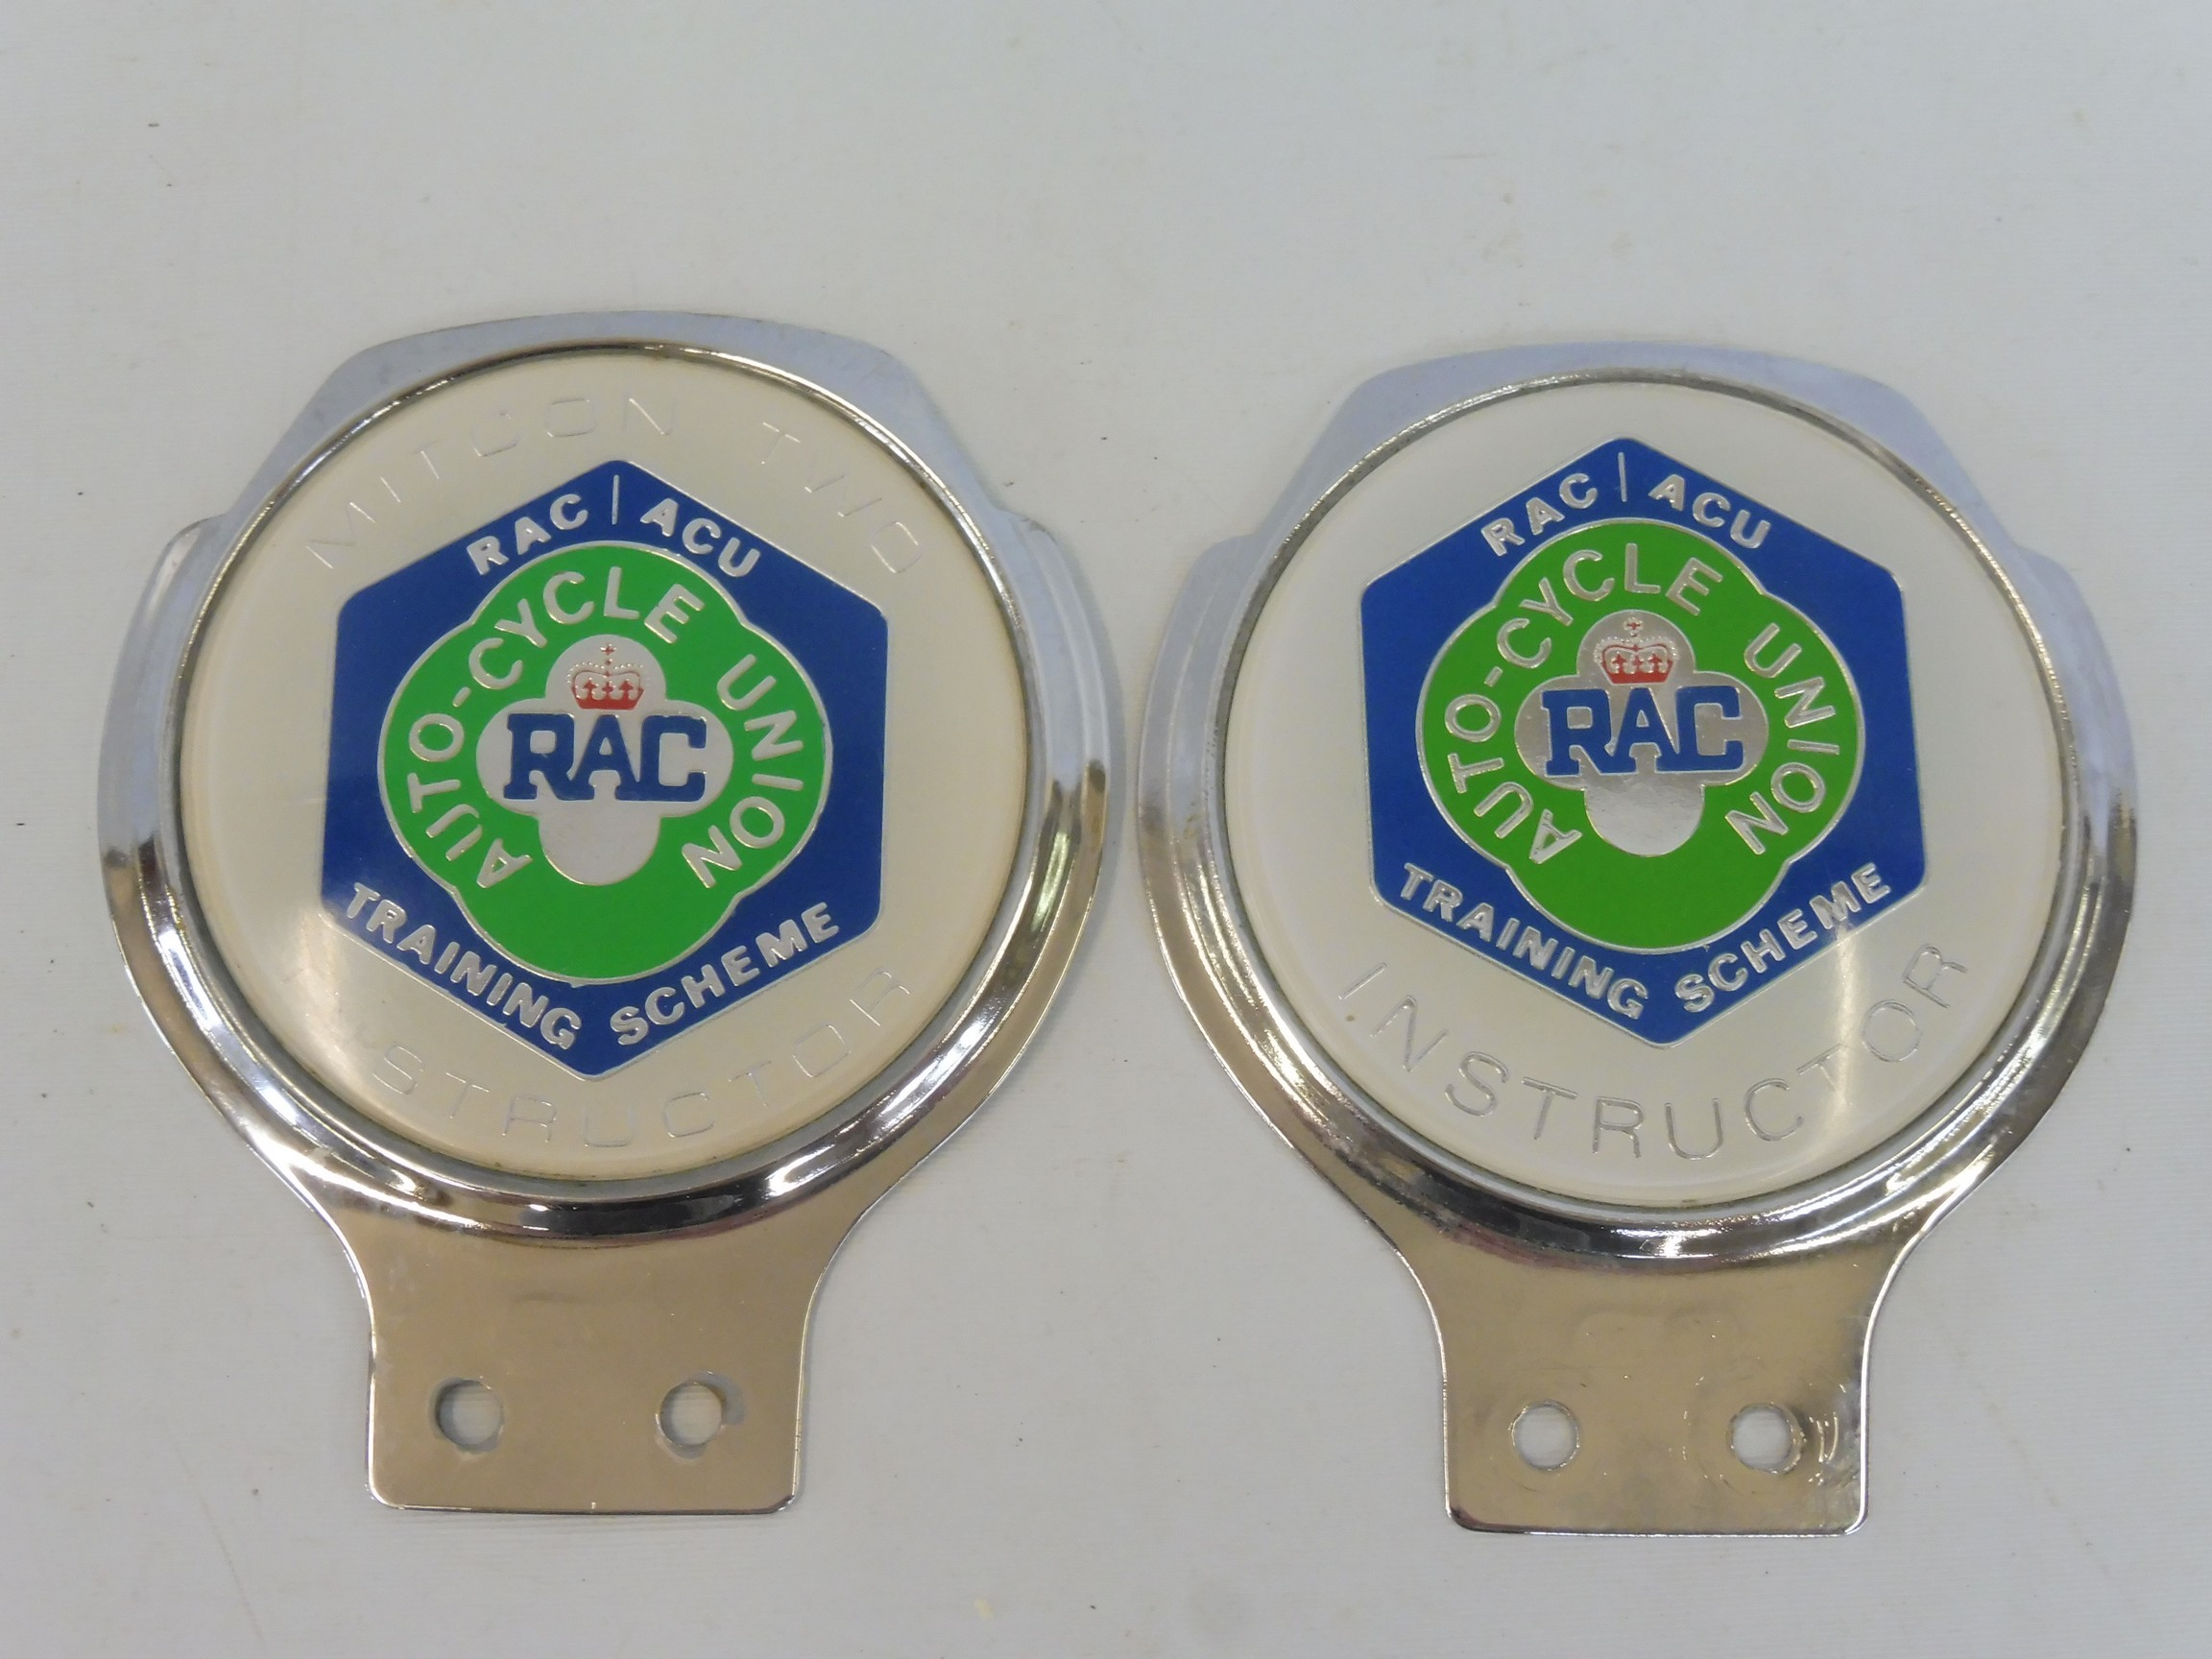 Two RAC Auto-Cycle Union Training Scheme Instructor's badges, type 2 and Regional 2.